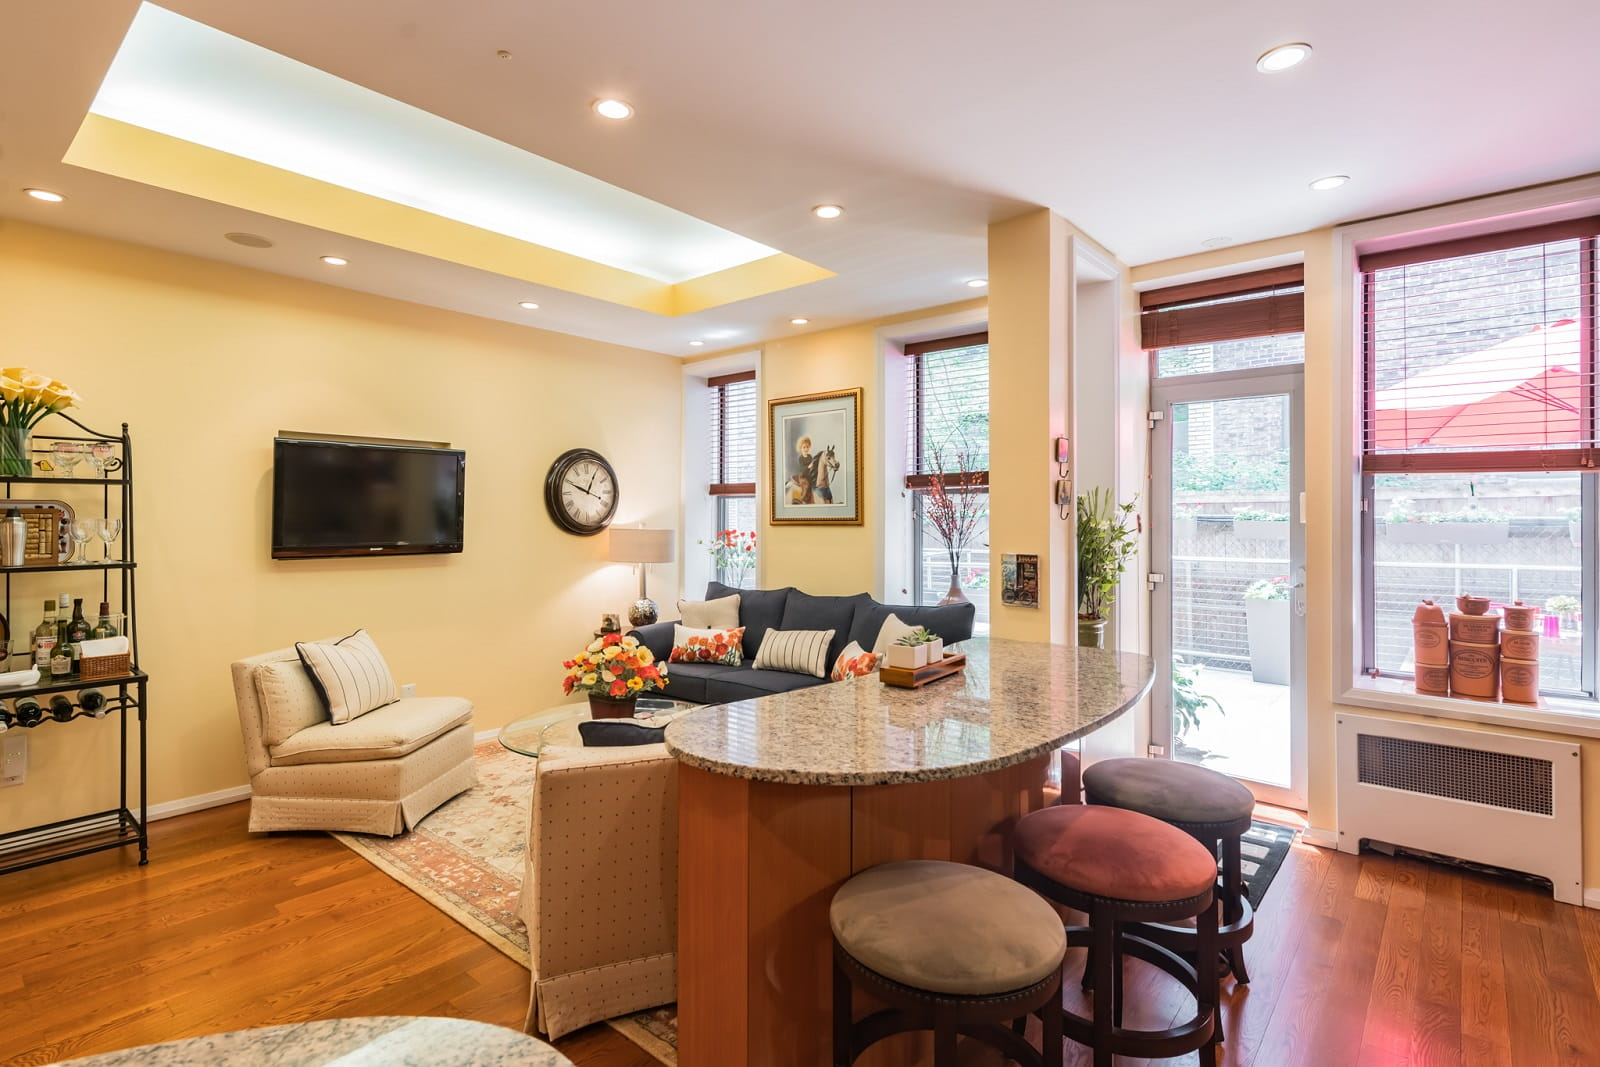 Real Estate Photography in Newyork City - NY - USA - Living Area View